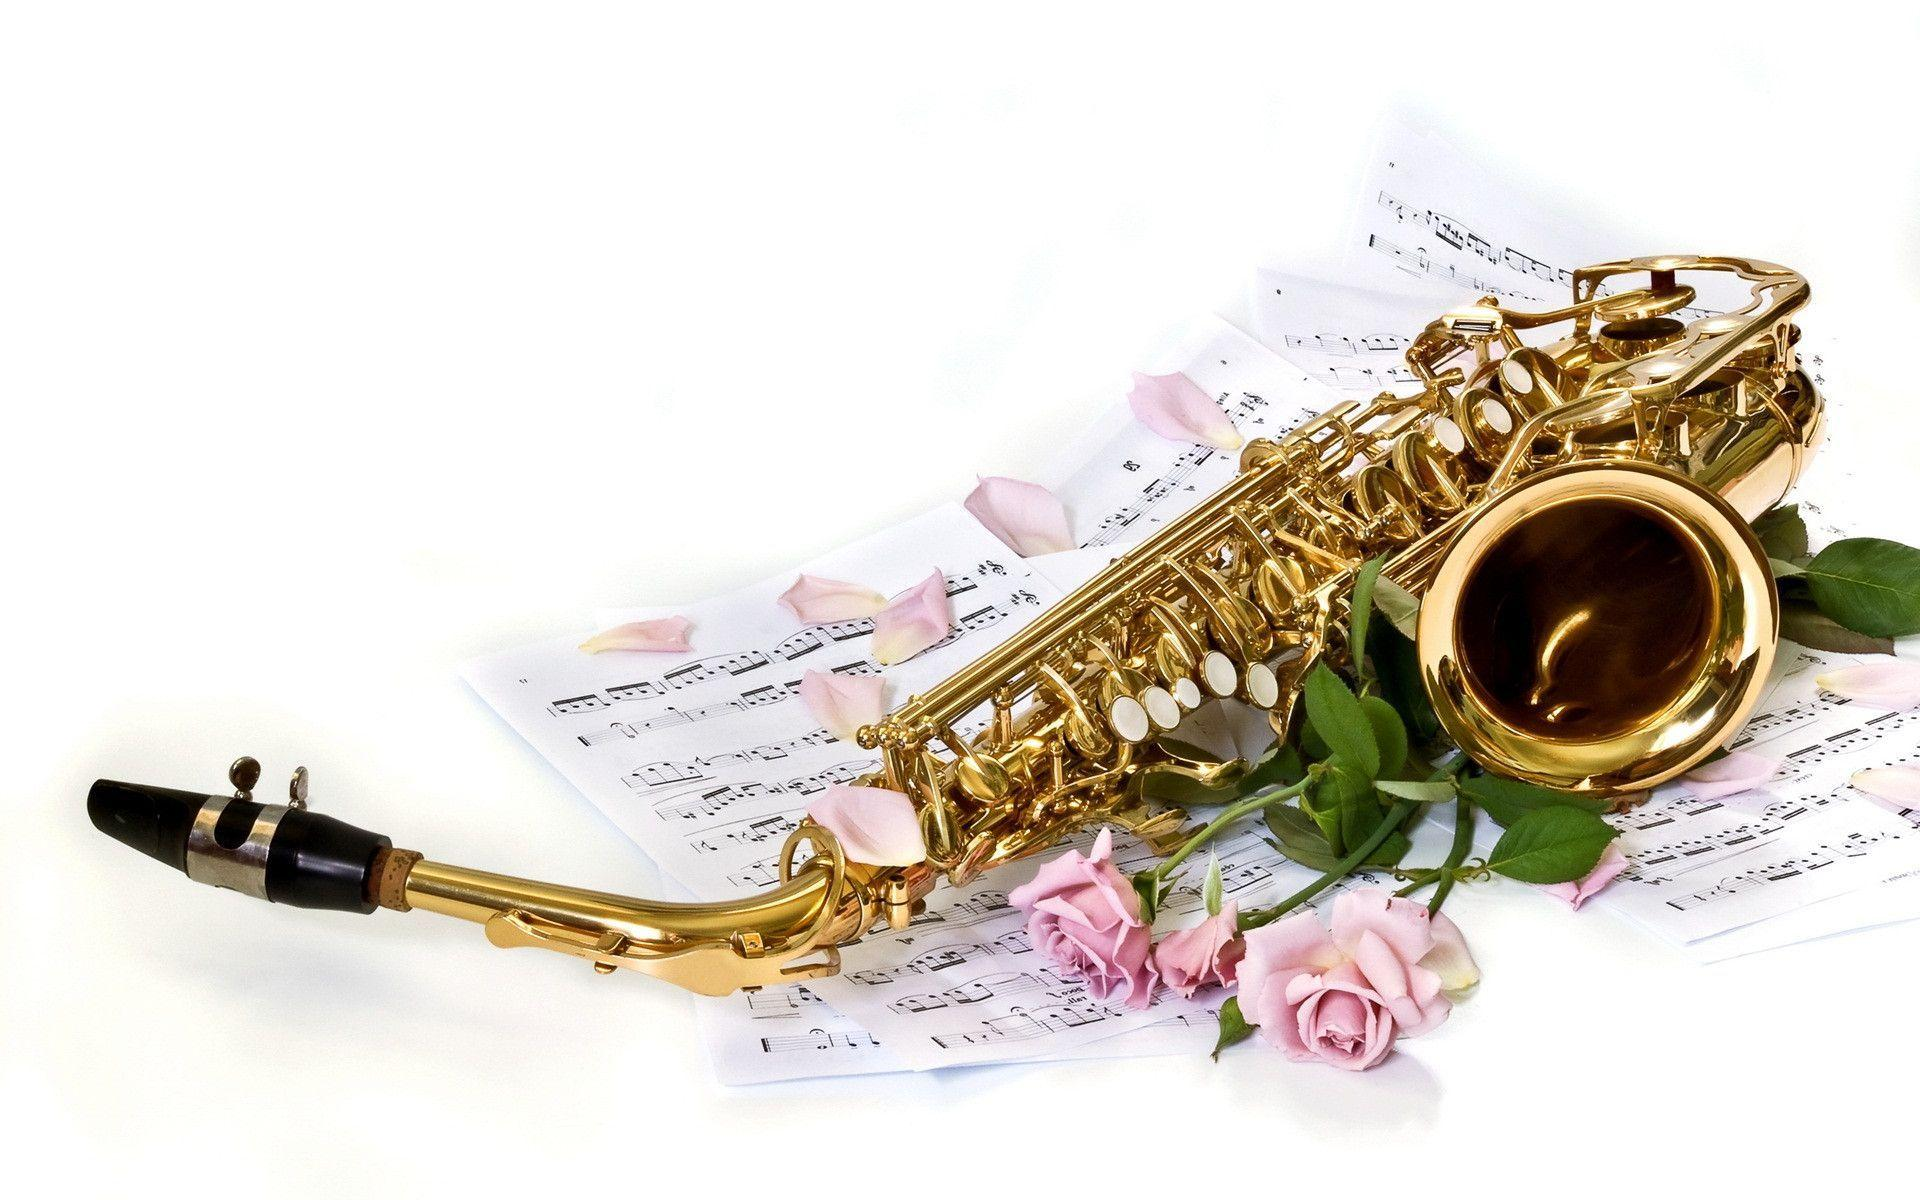 Music Saxophone Beautiful Wallpaper | Queenwallpaper.